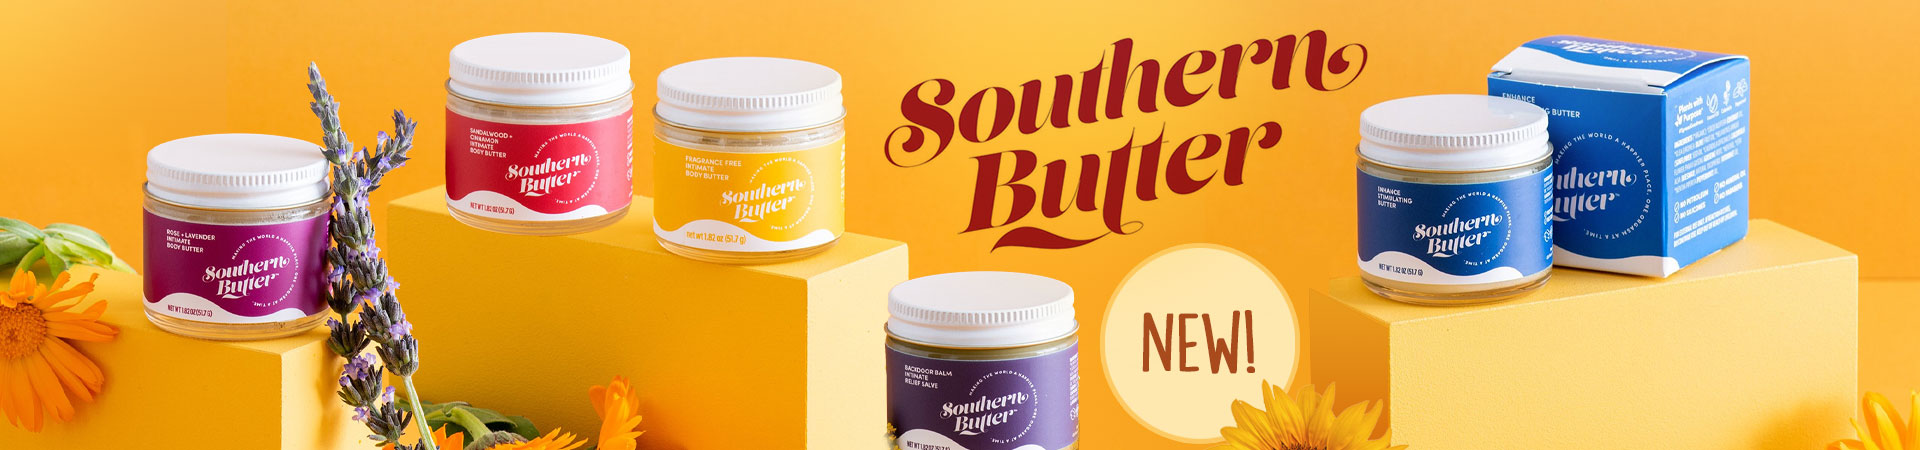 New Southern Butter